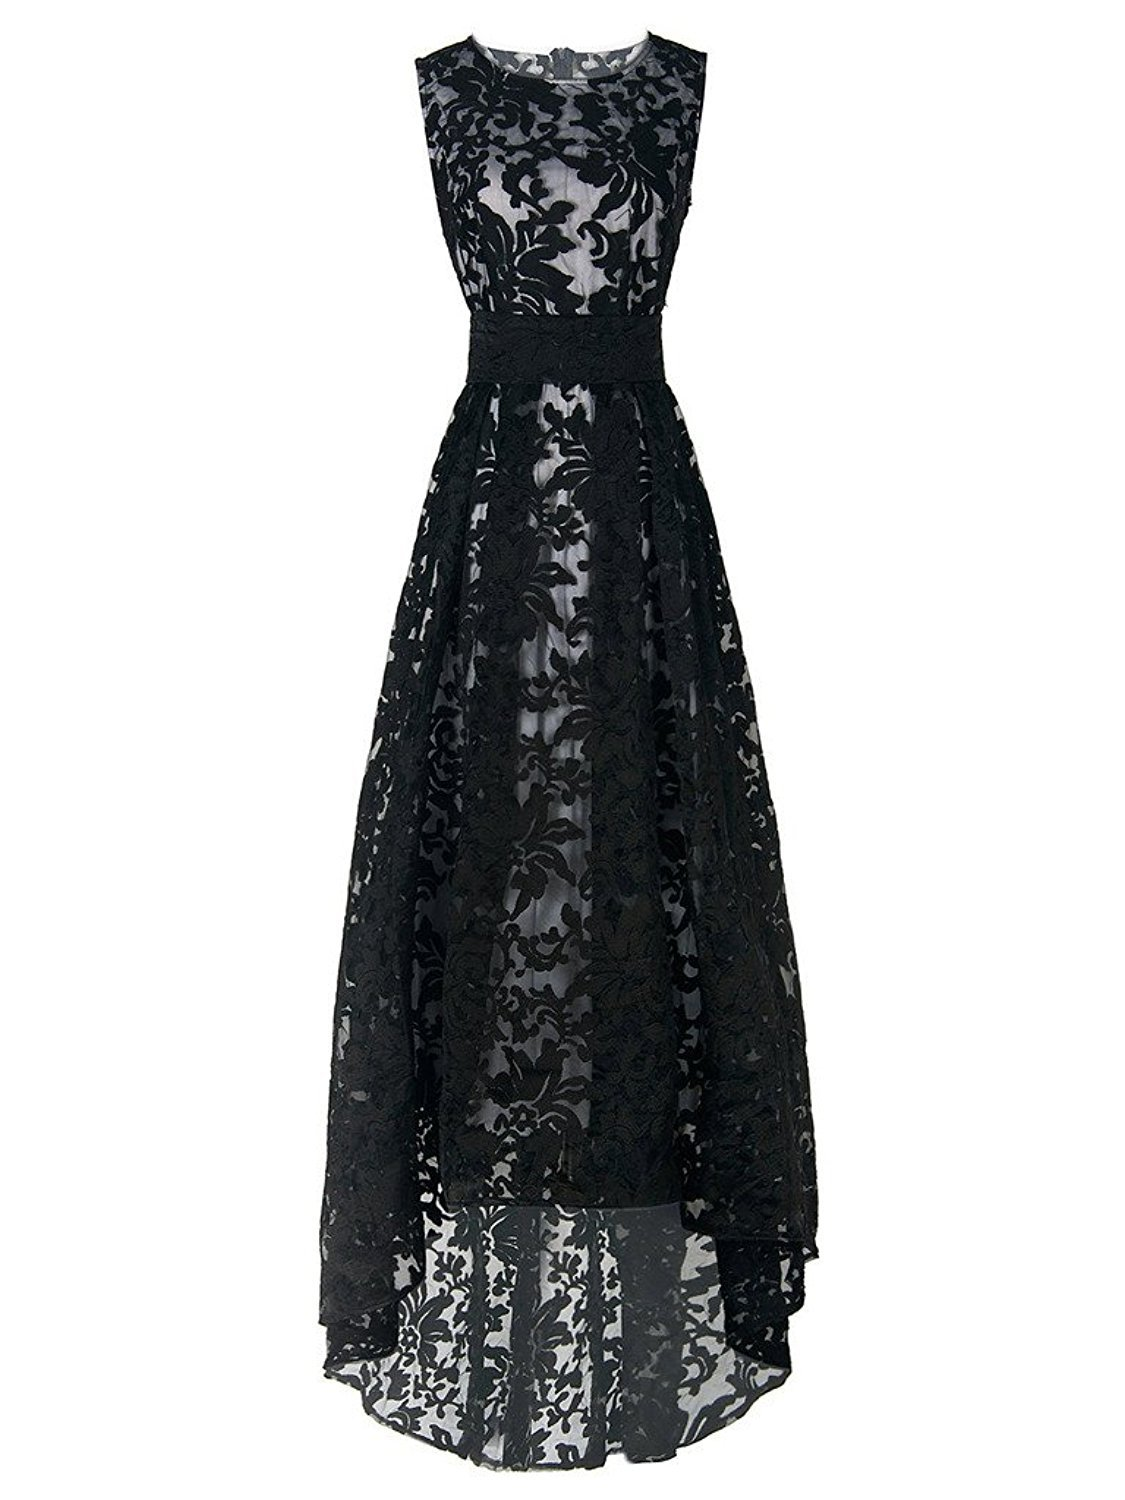 CHOiES record your inspired fashion Choies Women's Black Lace Sleeveless High Low Party Bridesmaids Maxi Dress XL